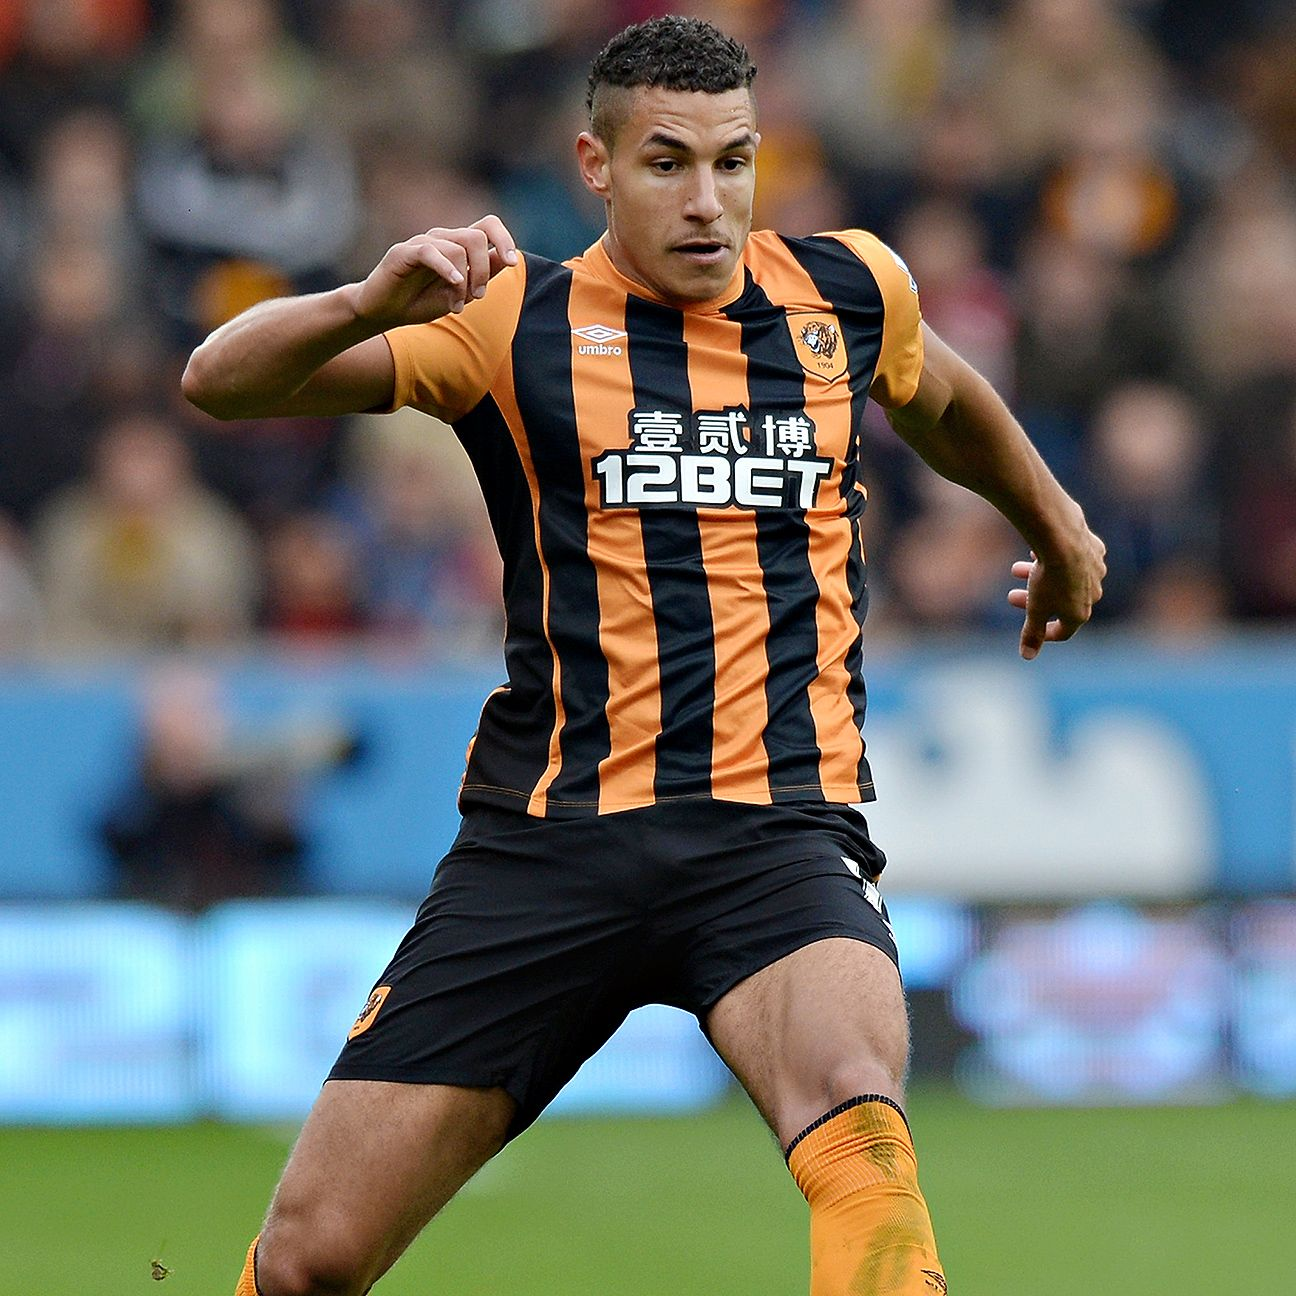 Hull City moved quickly over the summer to make Jake Livermore a permanent member of the squad.